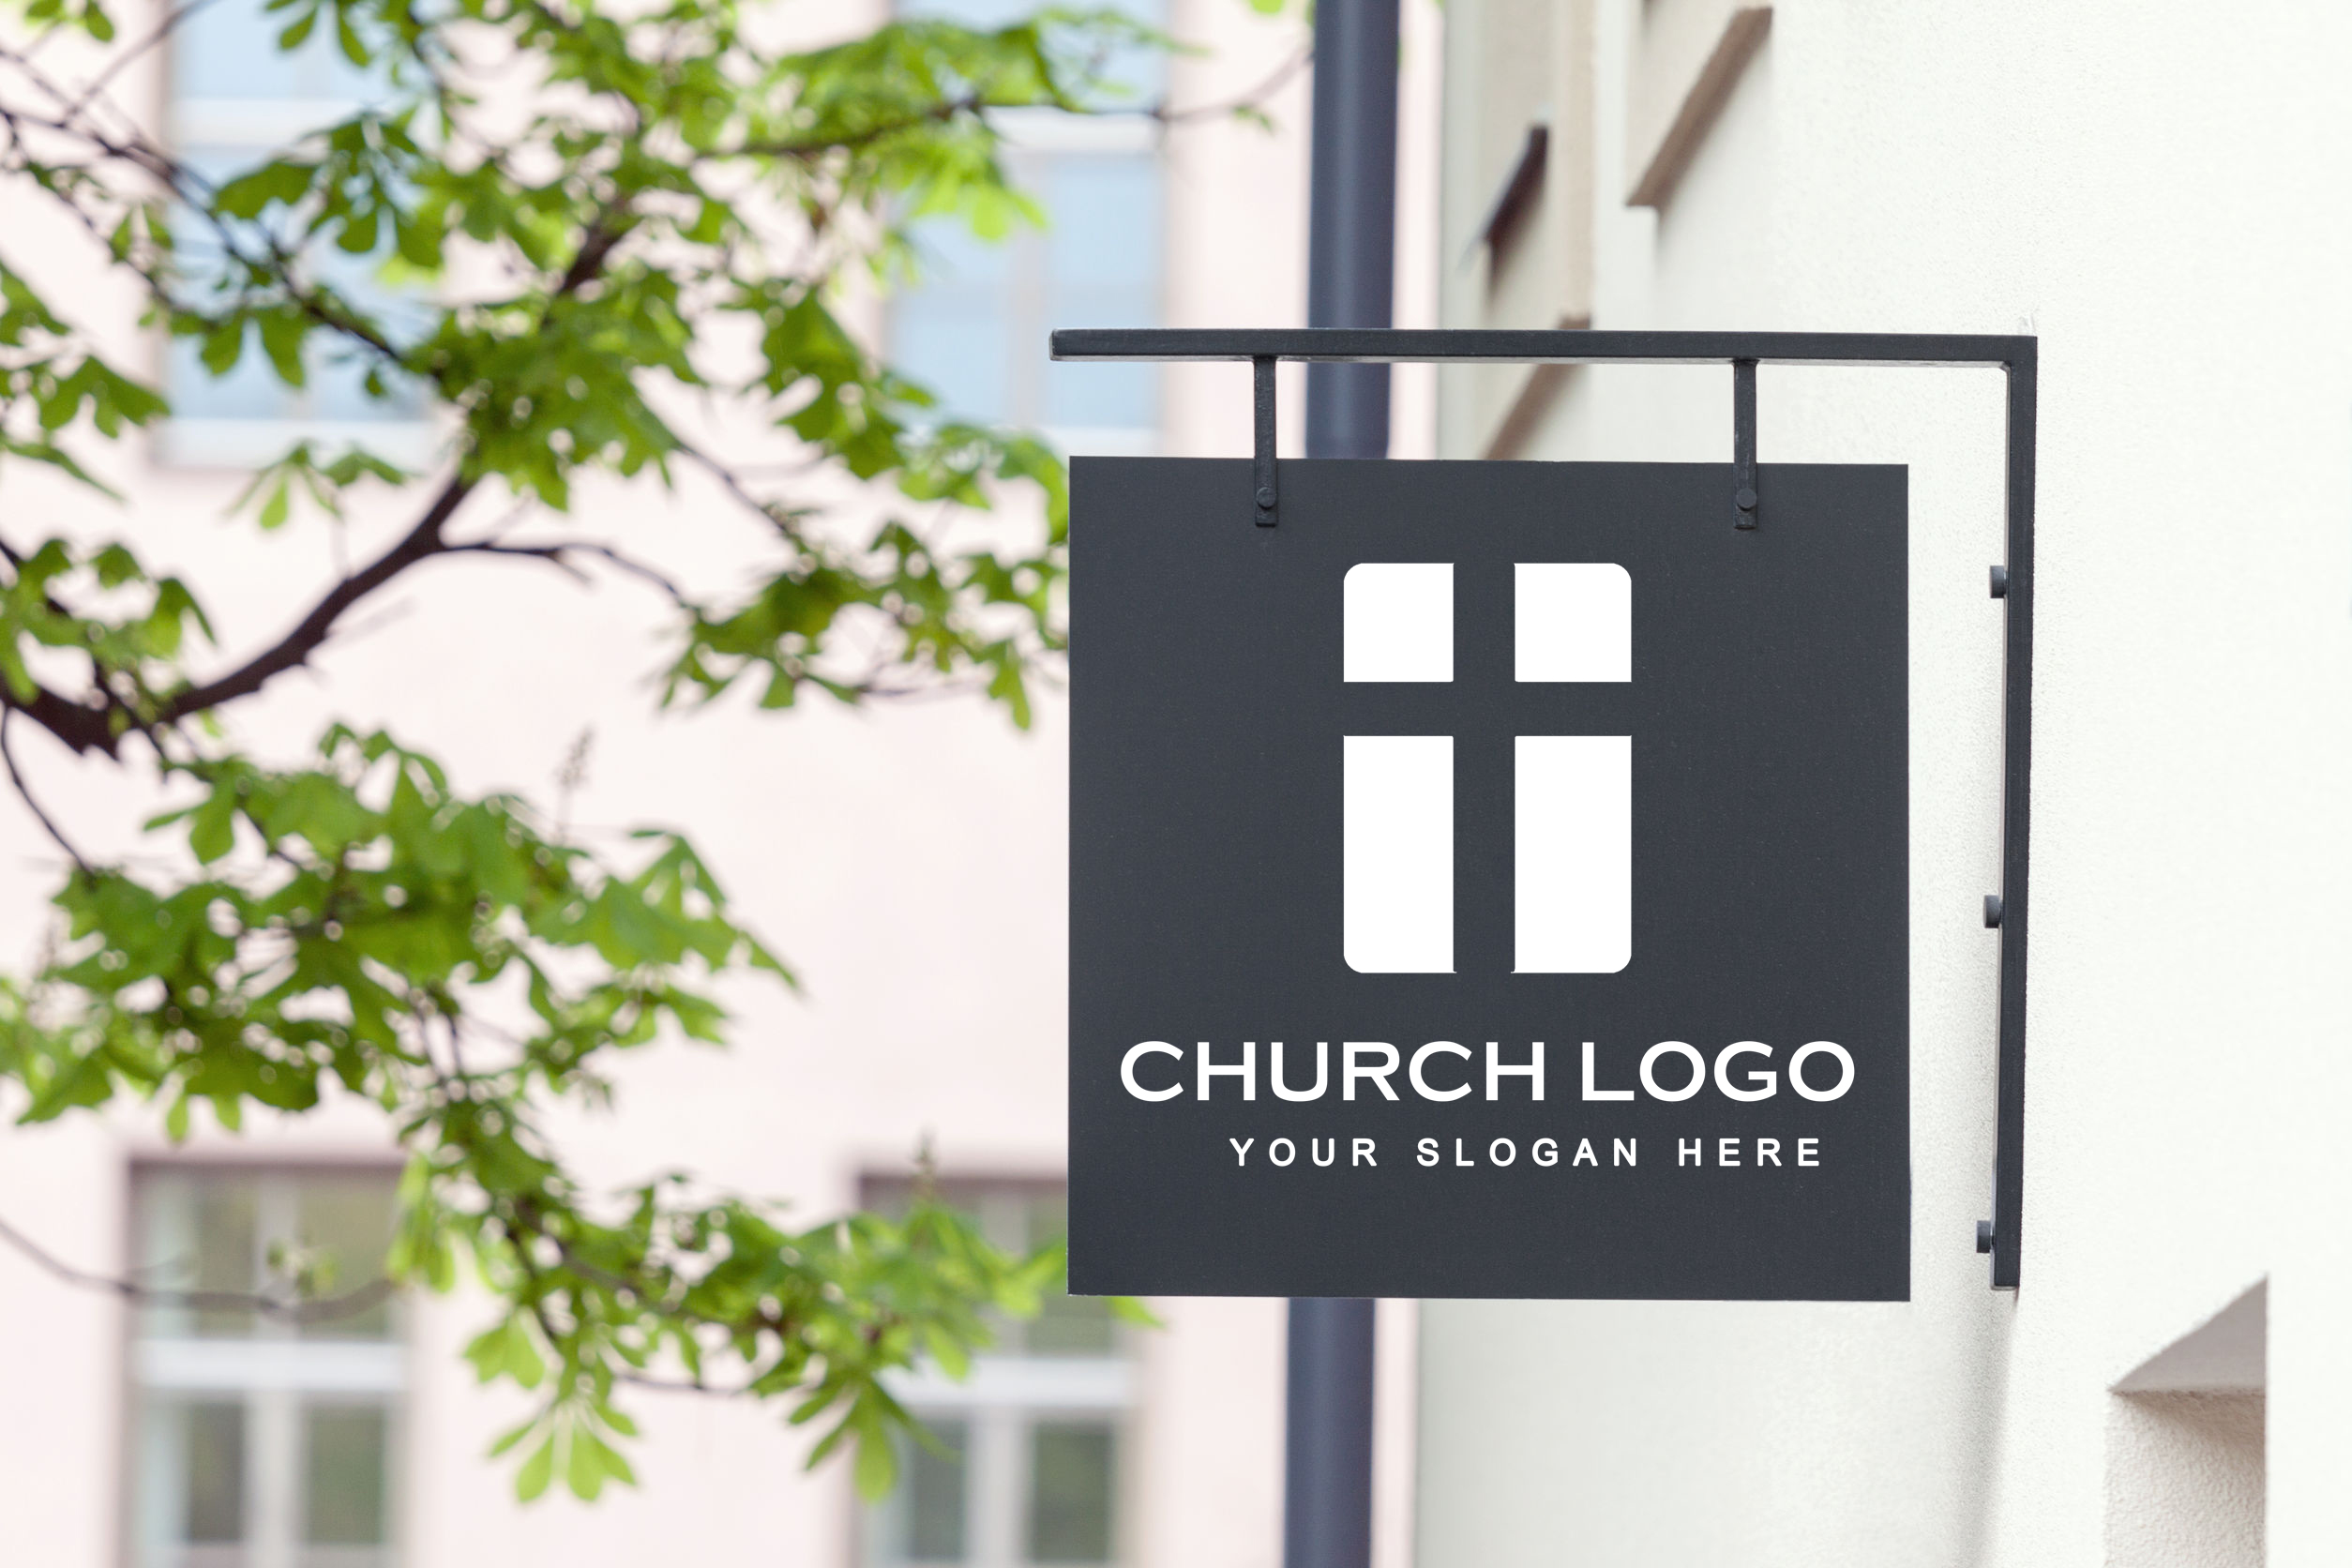 picture of church logo design on sign